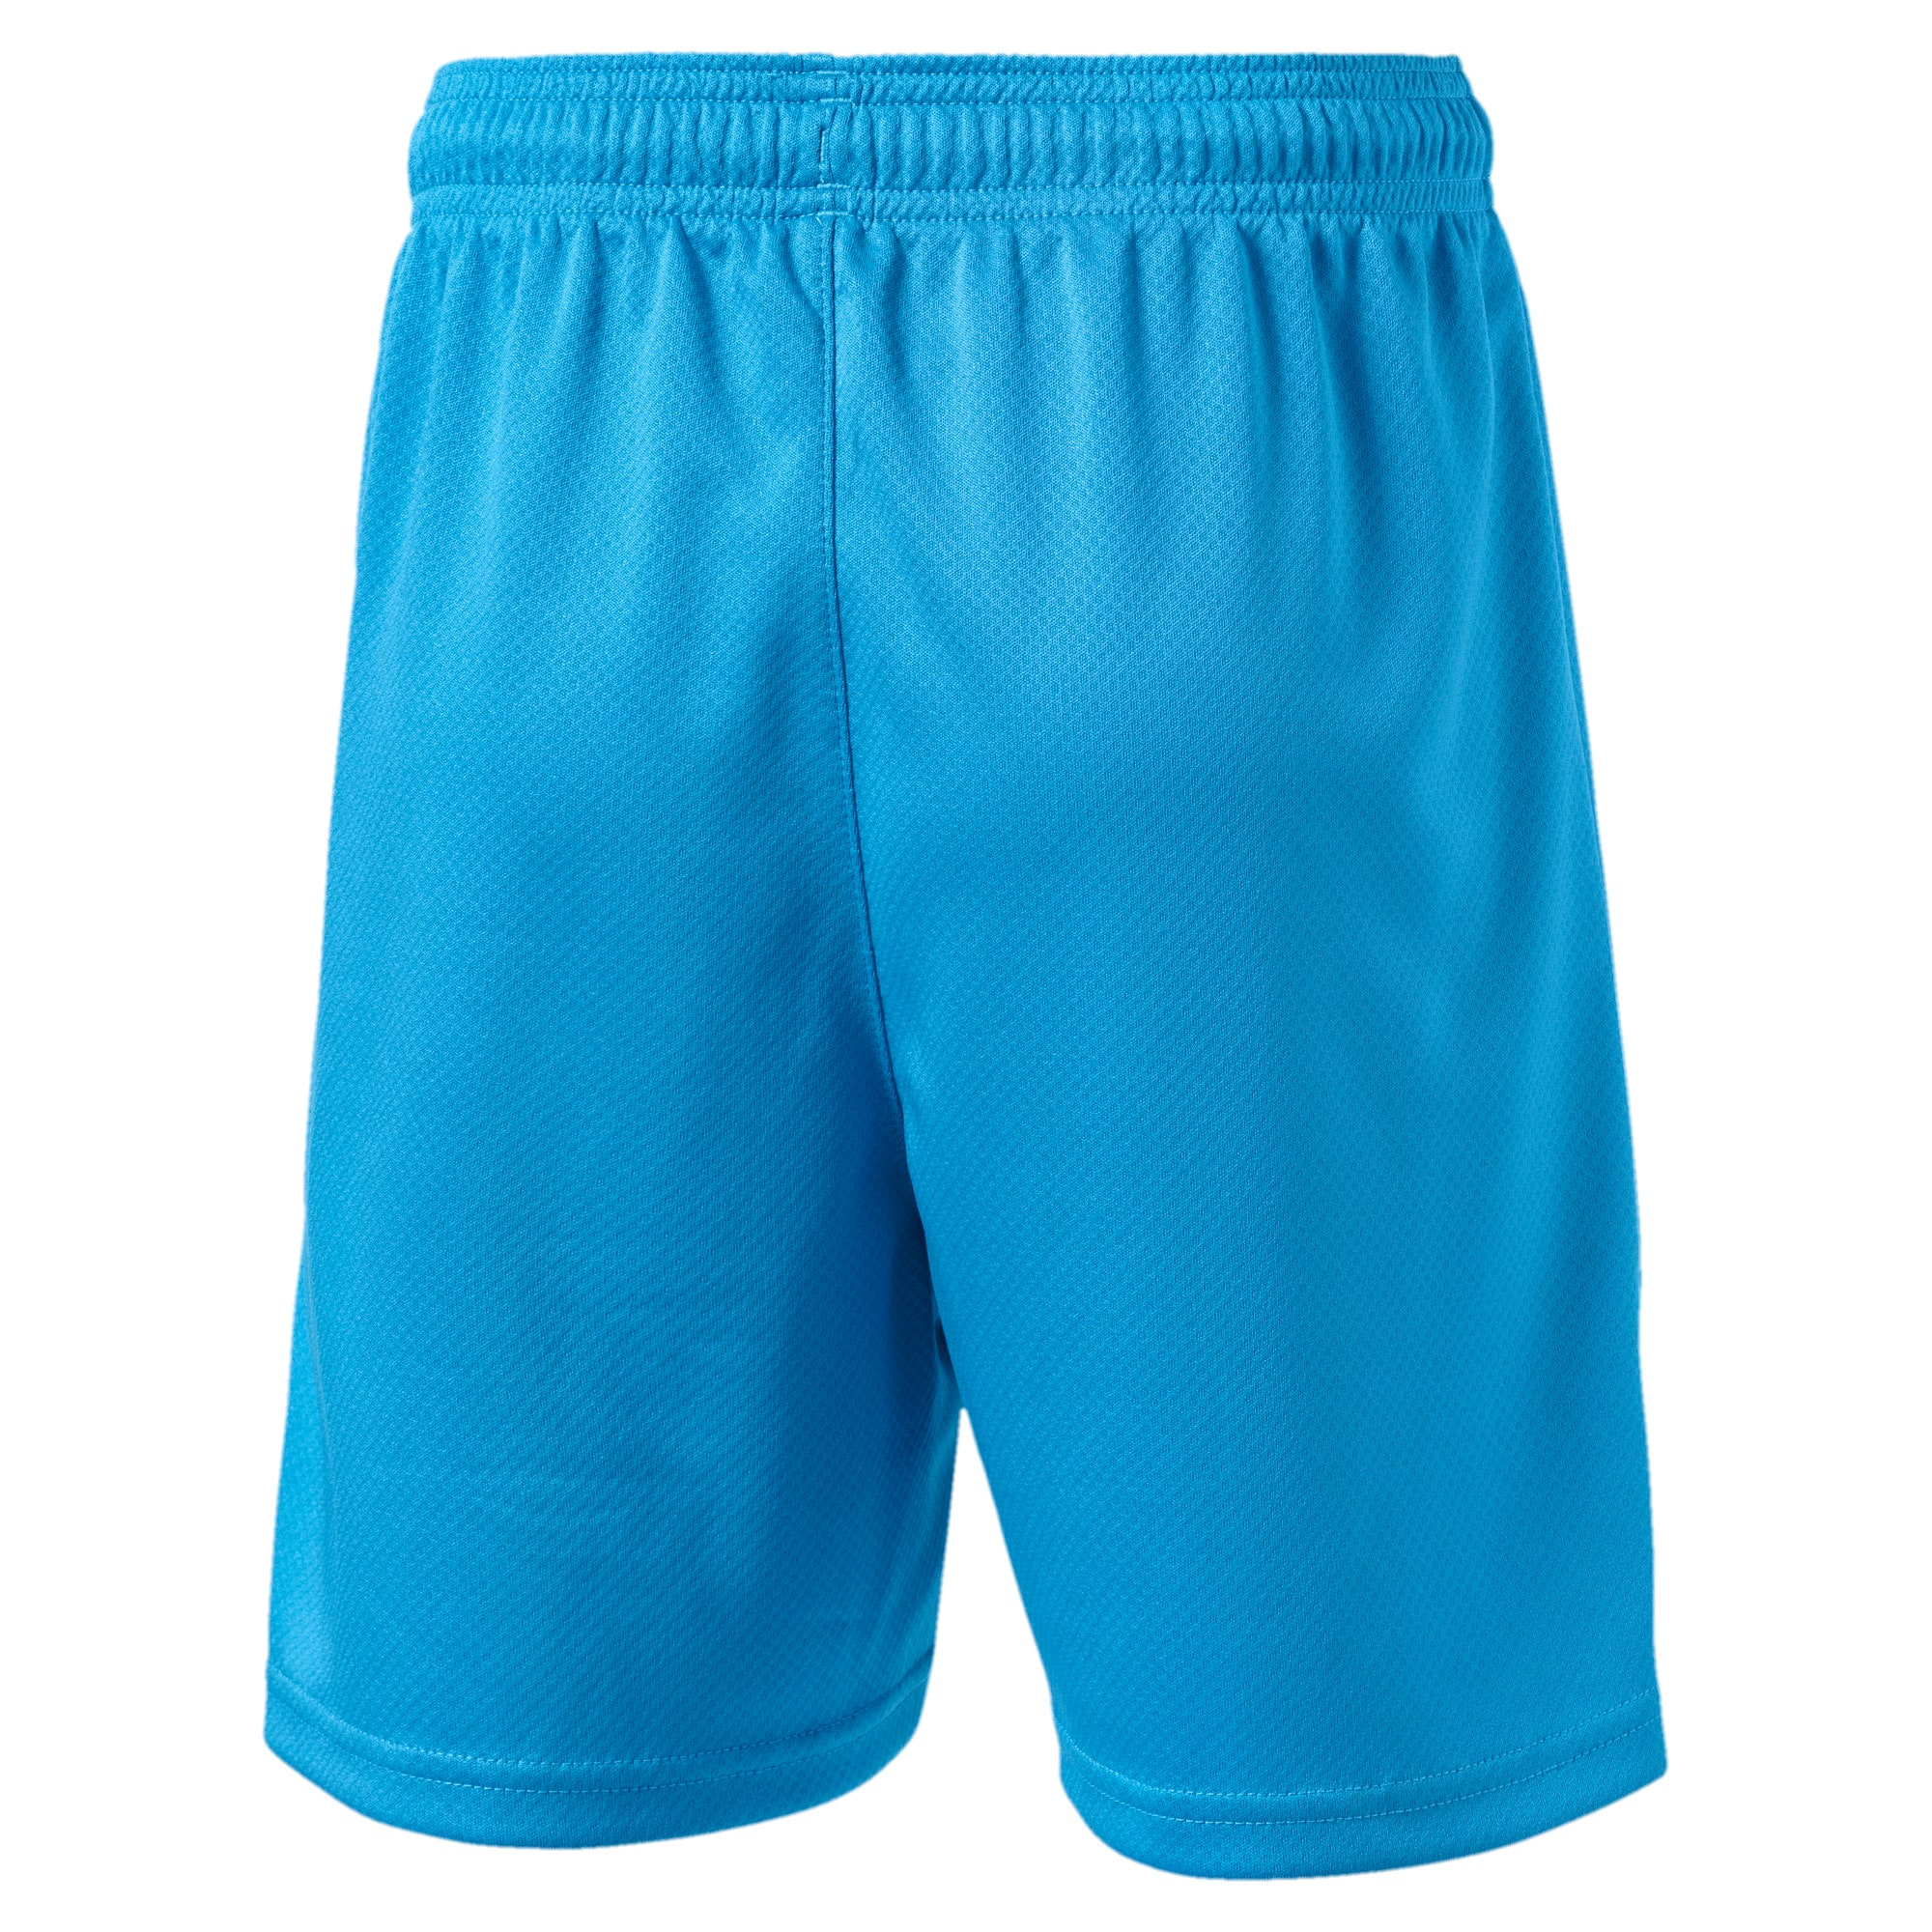 Thumbnail 2 of Valencia CF Jungen Replica Shorts, Bleu Azur-Puma White, medium